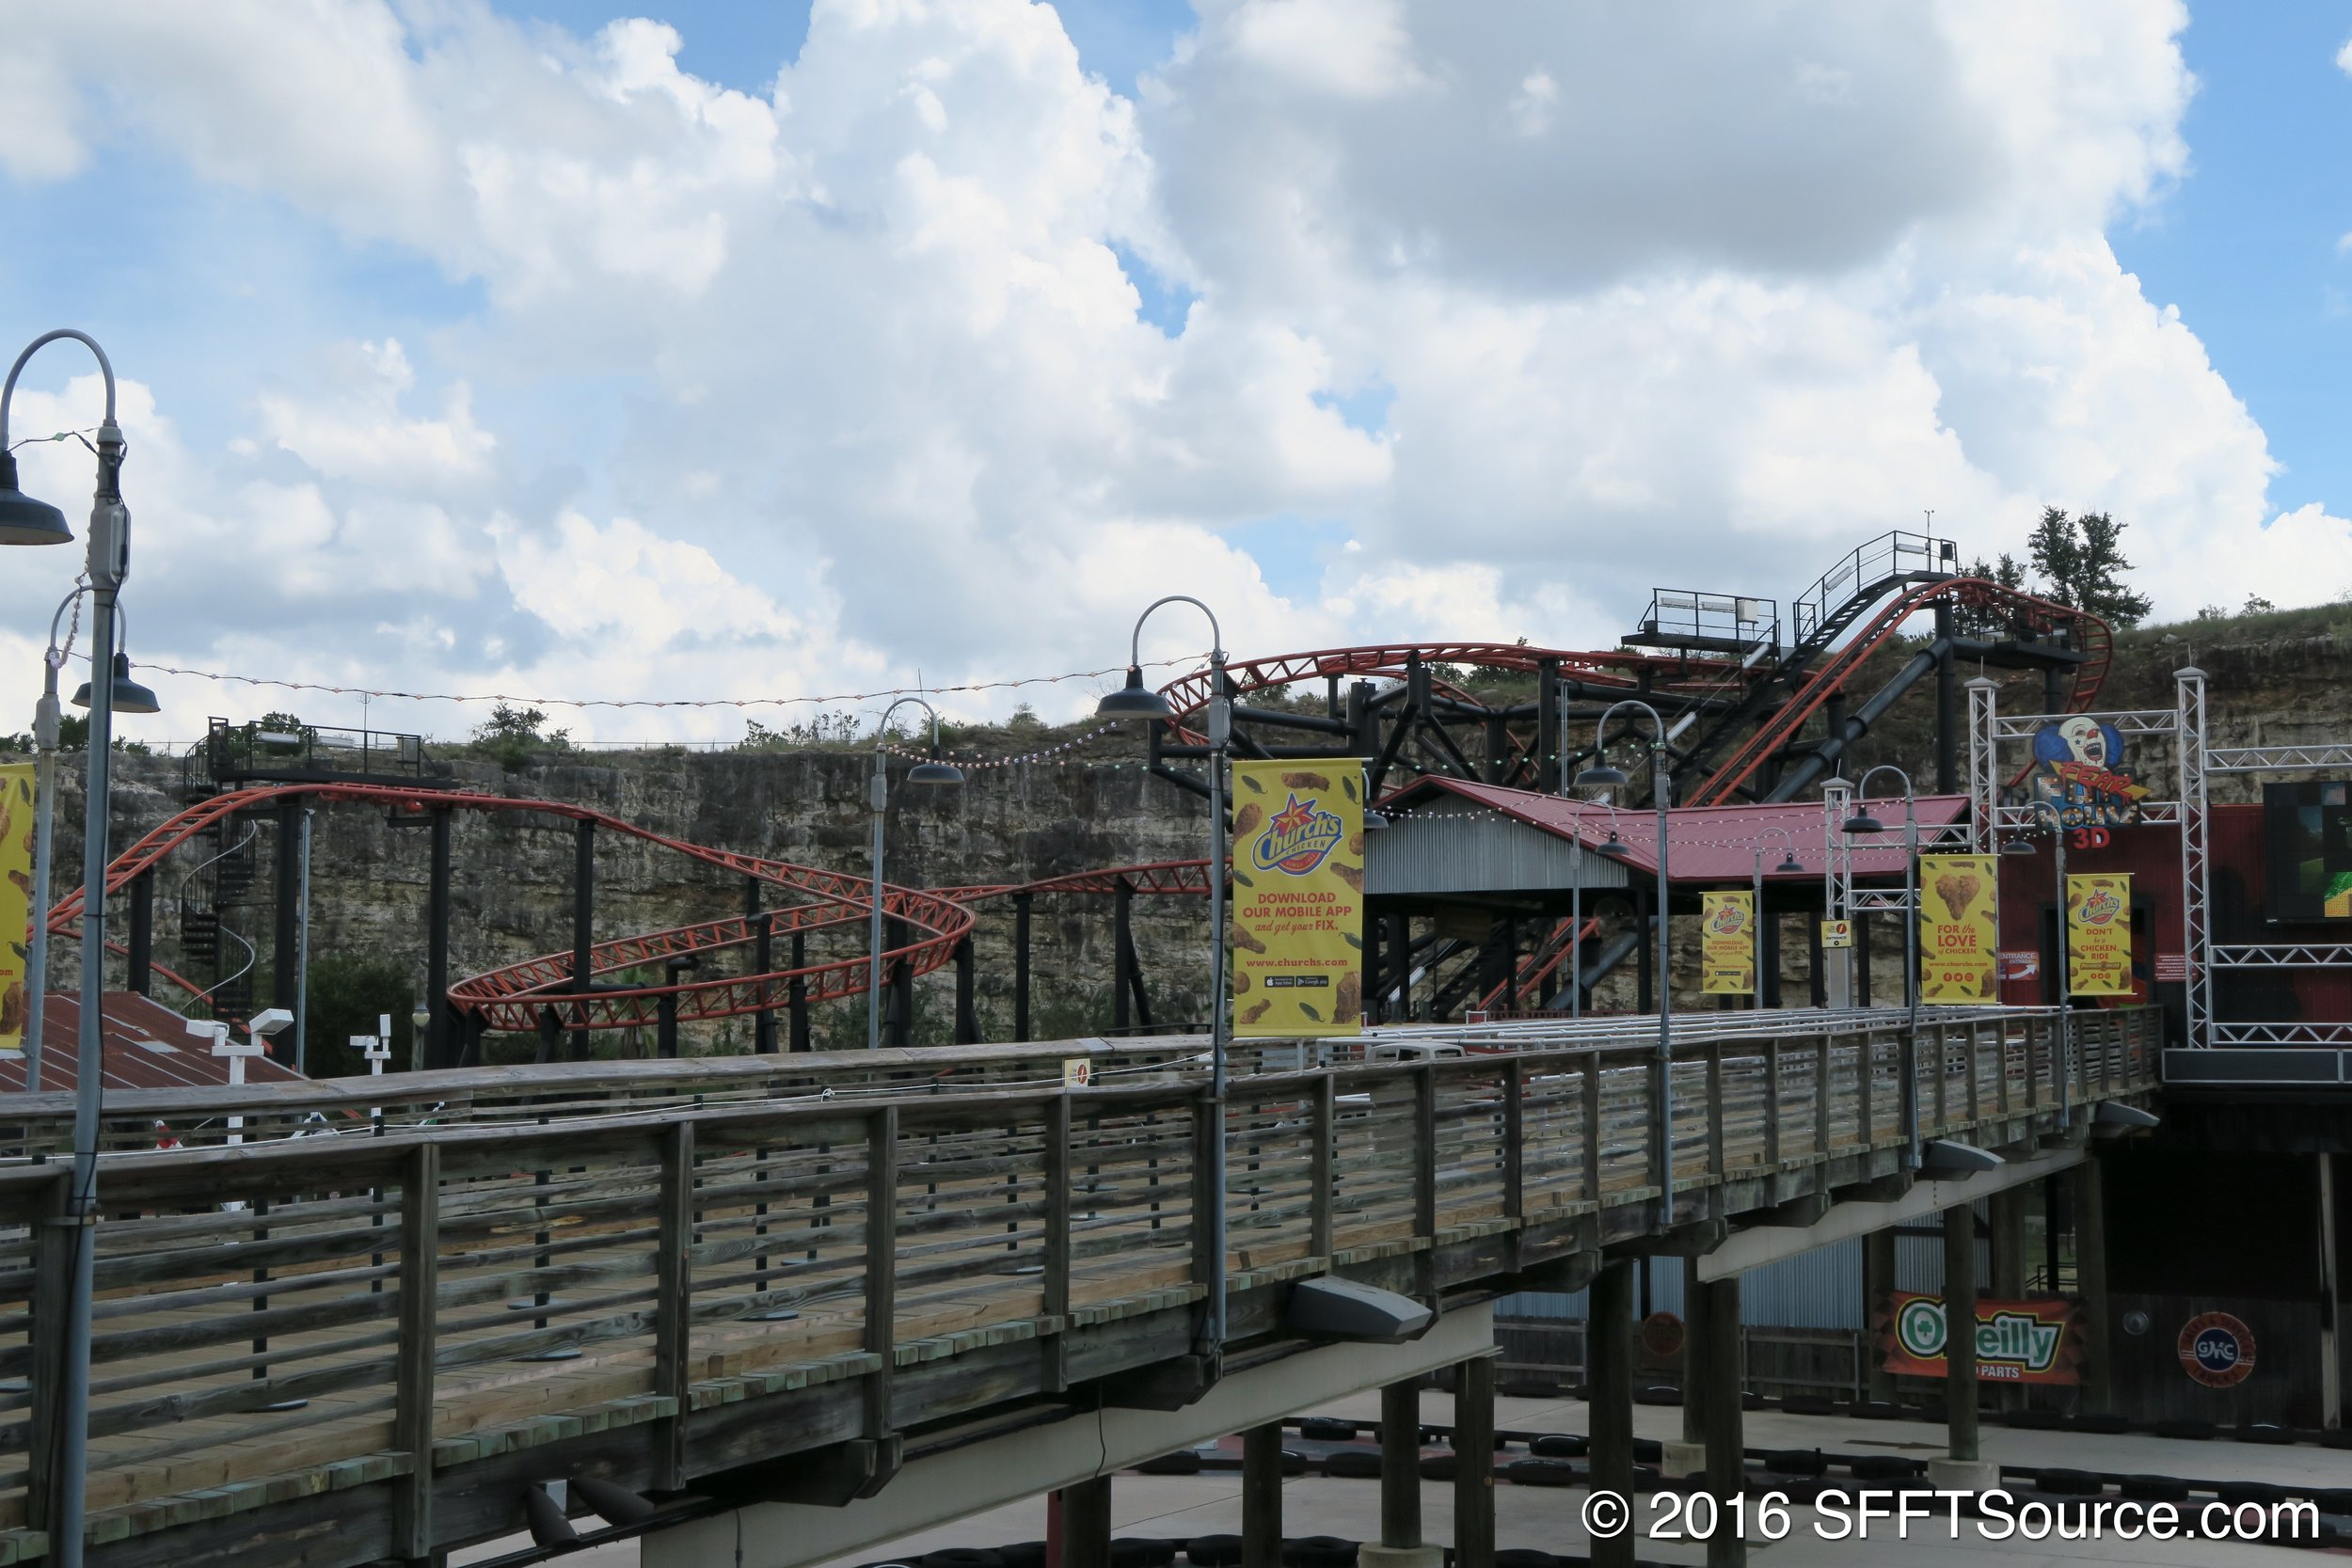 The queue area of the ride.